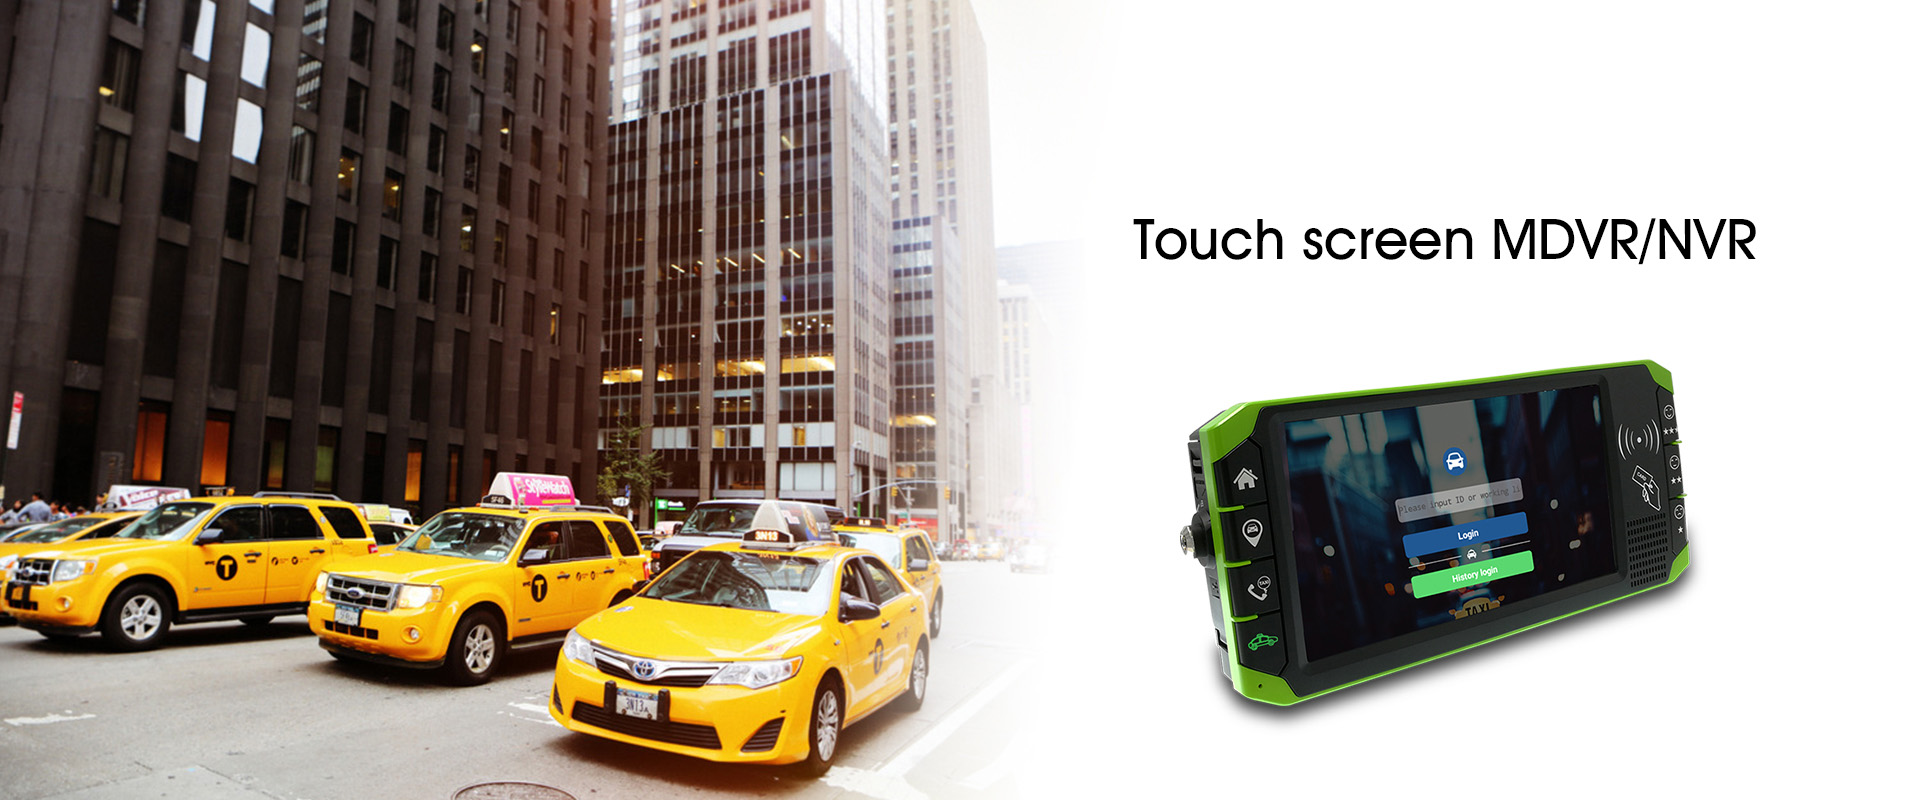 Touch screen MDVR/NVR